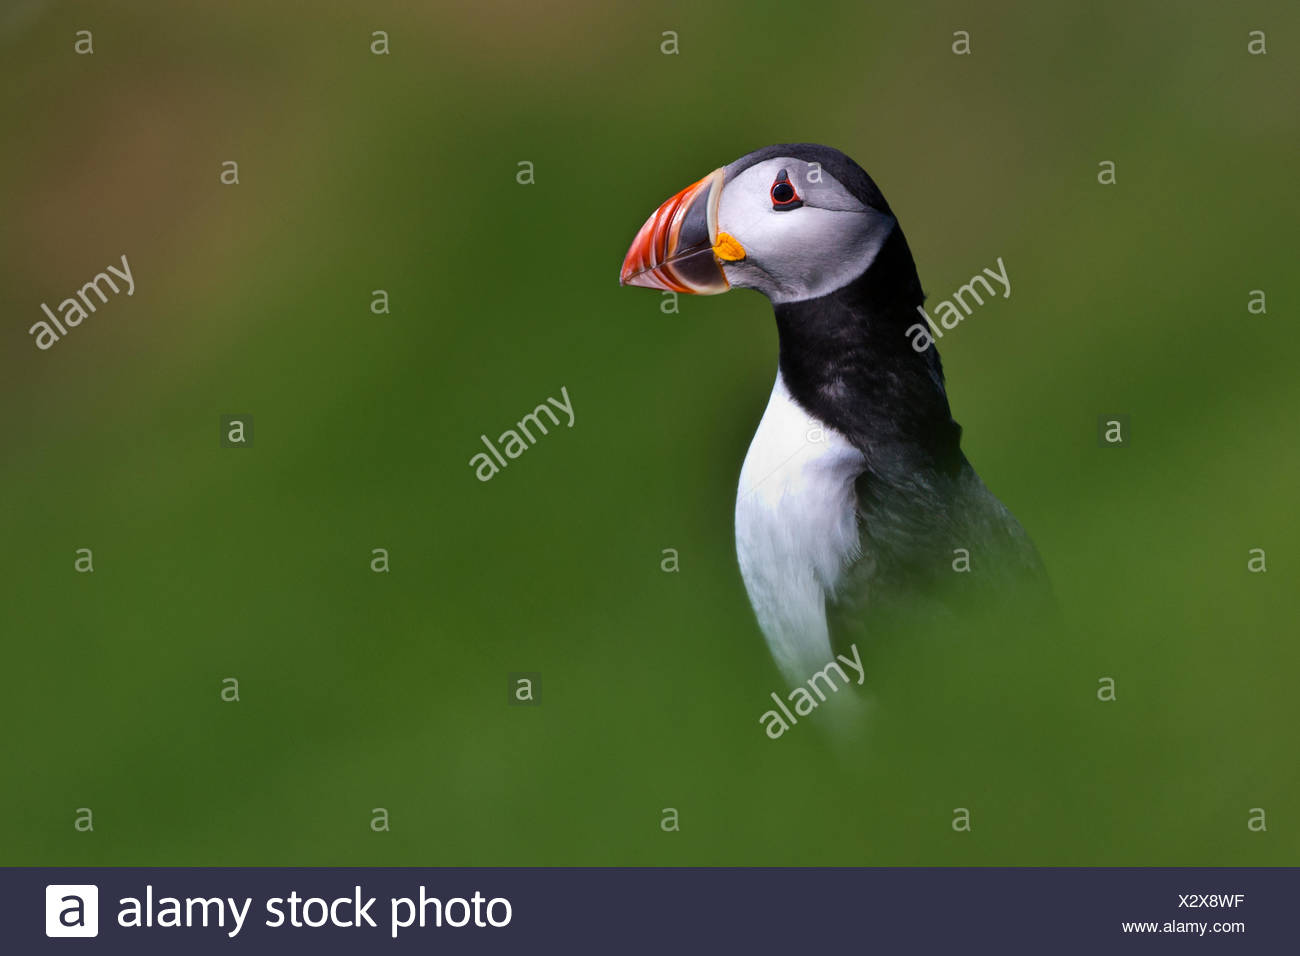 Portrait of an Atlantic puffin. - Stock Image